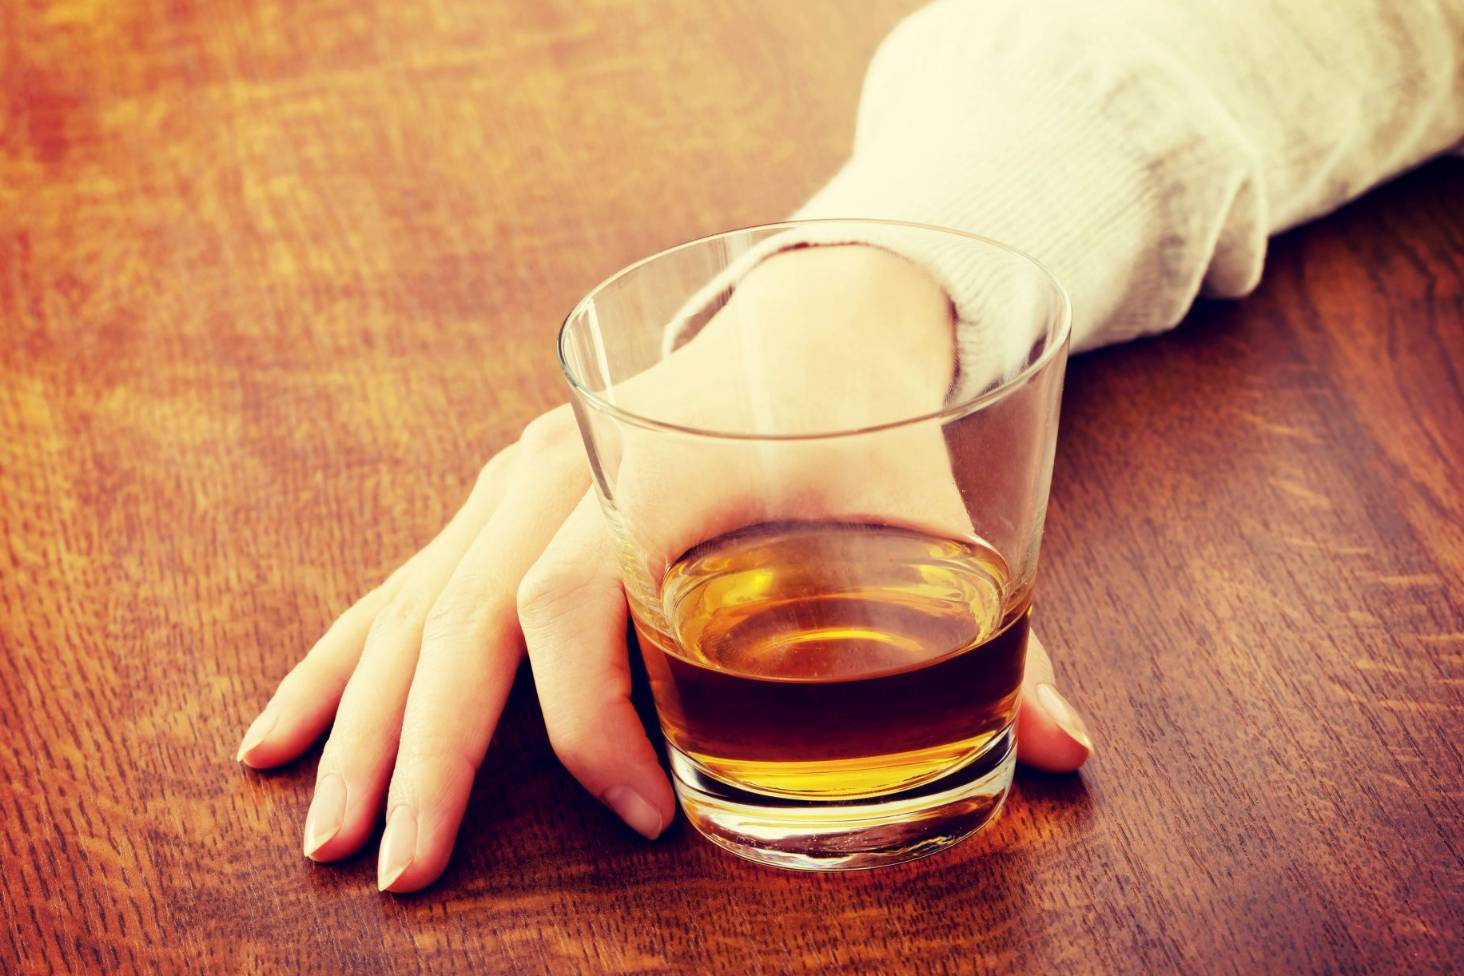 Self medicating anxiety with alcohol is common but dangerous